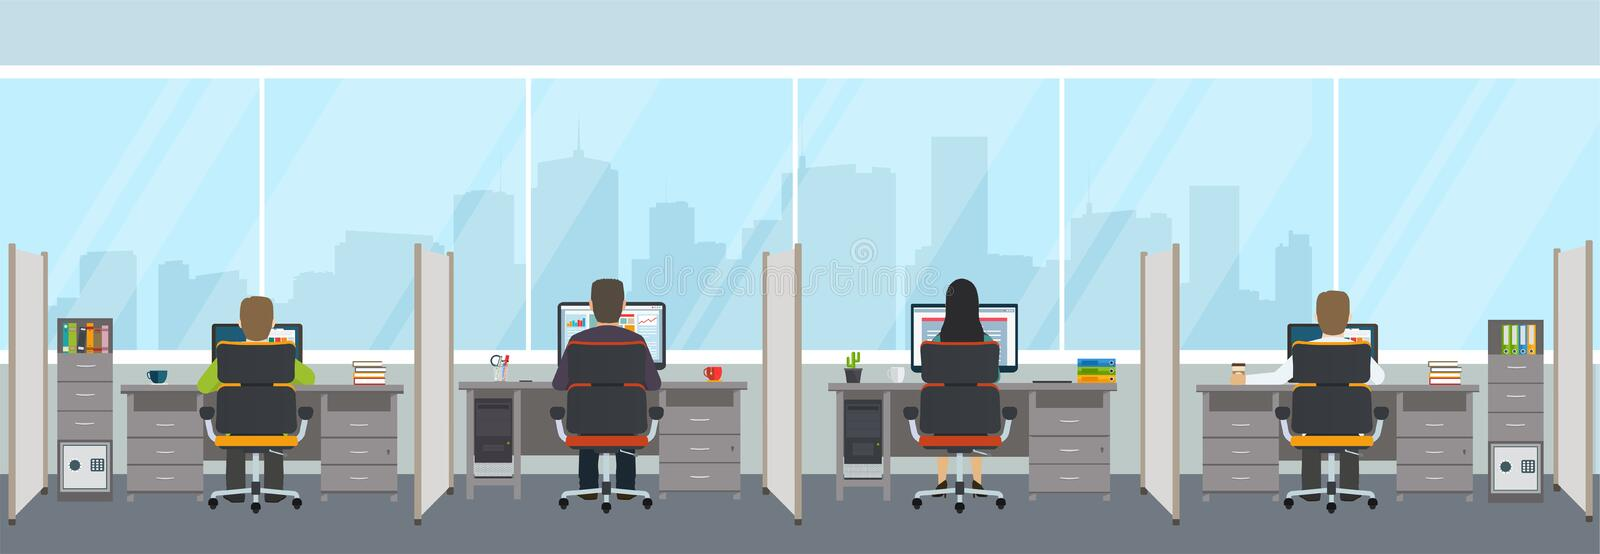 Modern office interior with employees. Office space with panoramic windows royalty free illustration